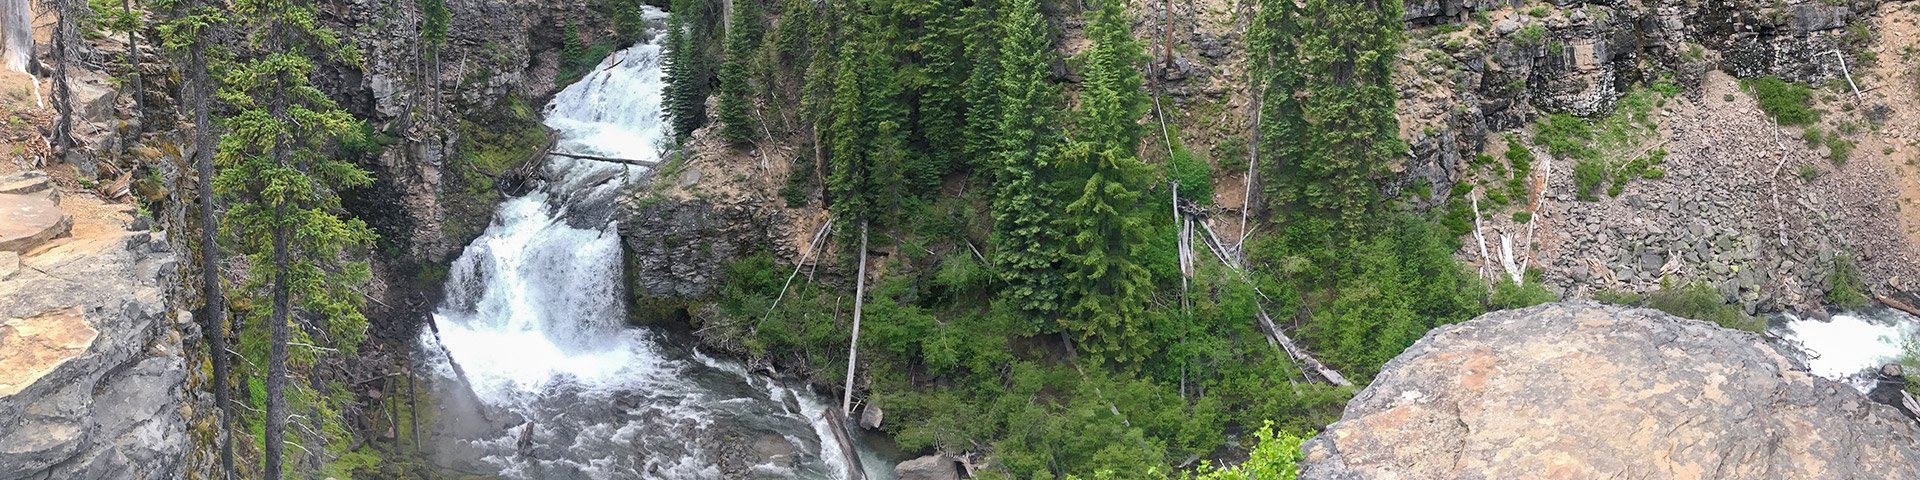 Panorama from the Tumalo Falls hike around Bend, Oregon